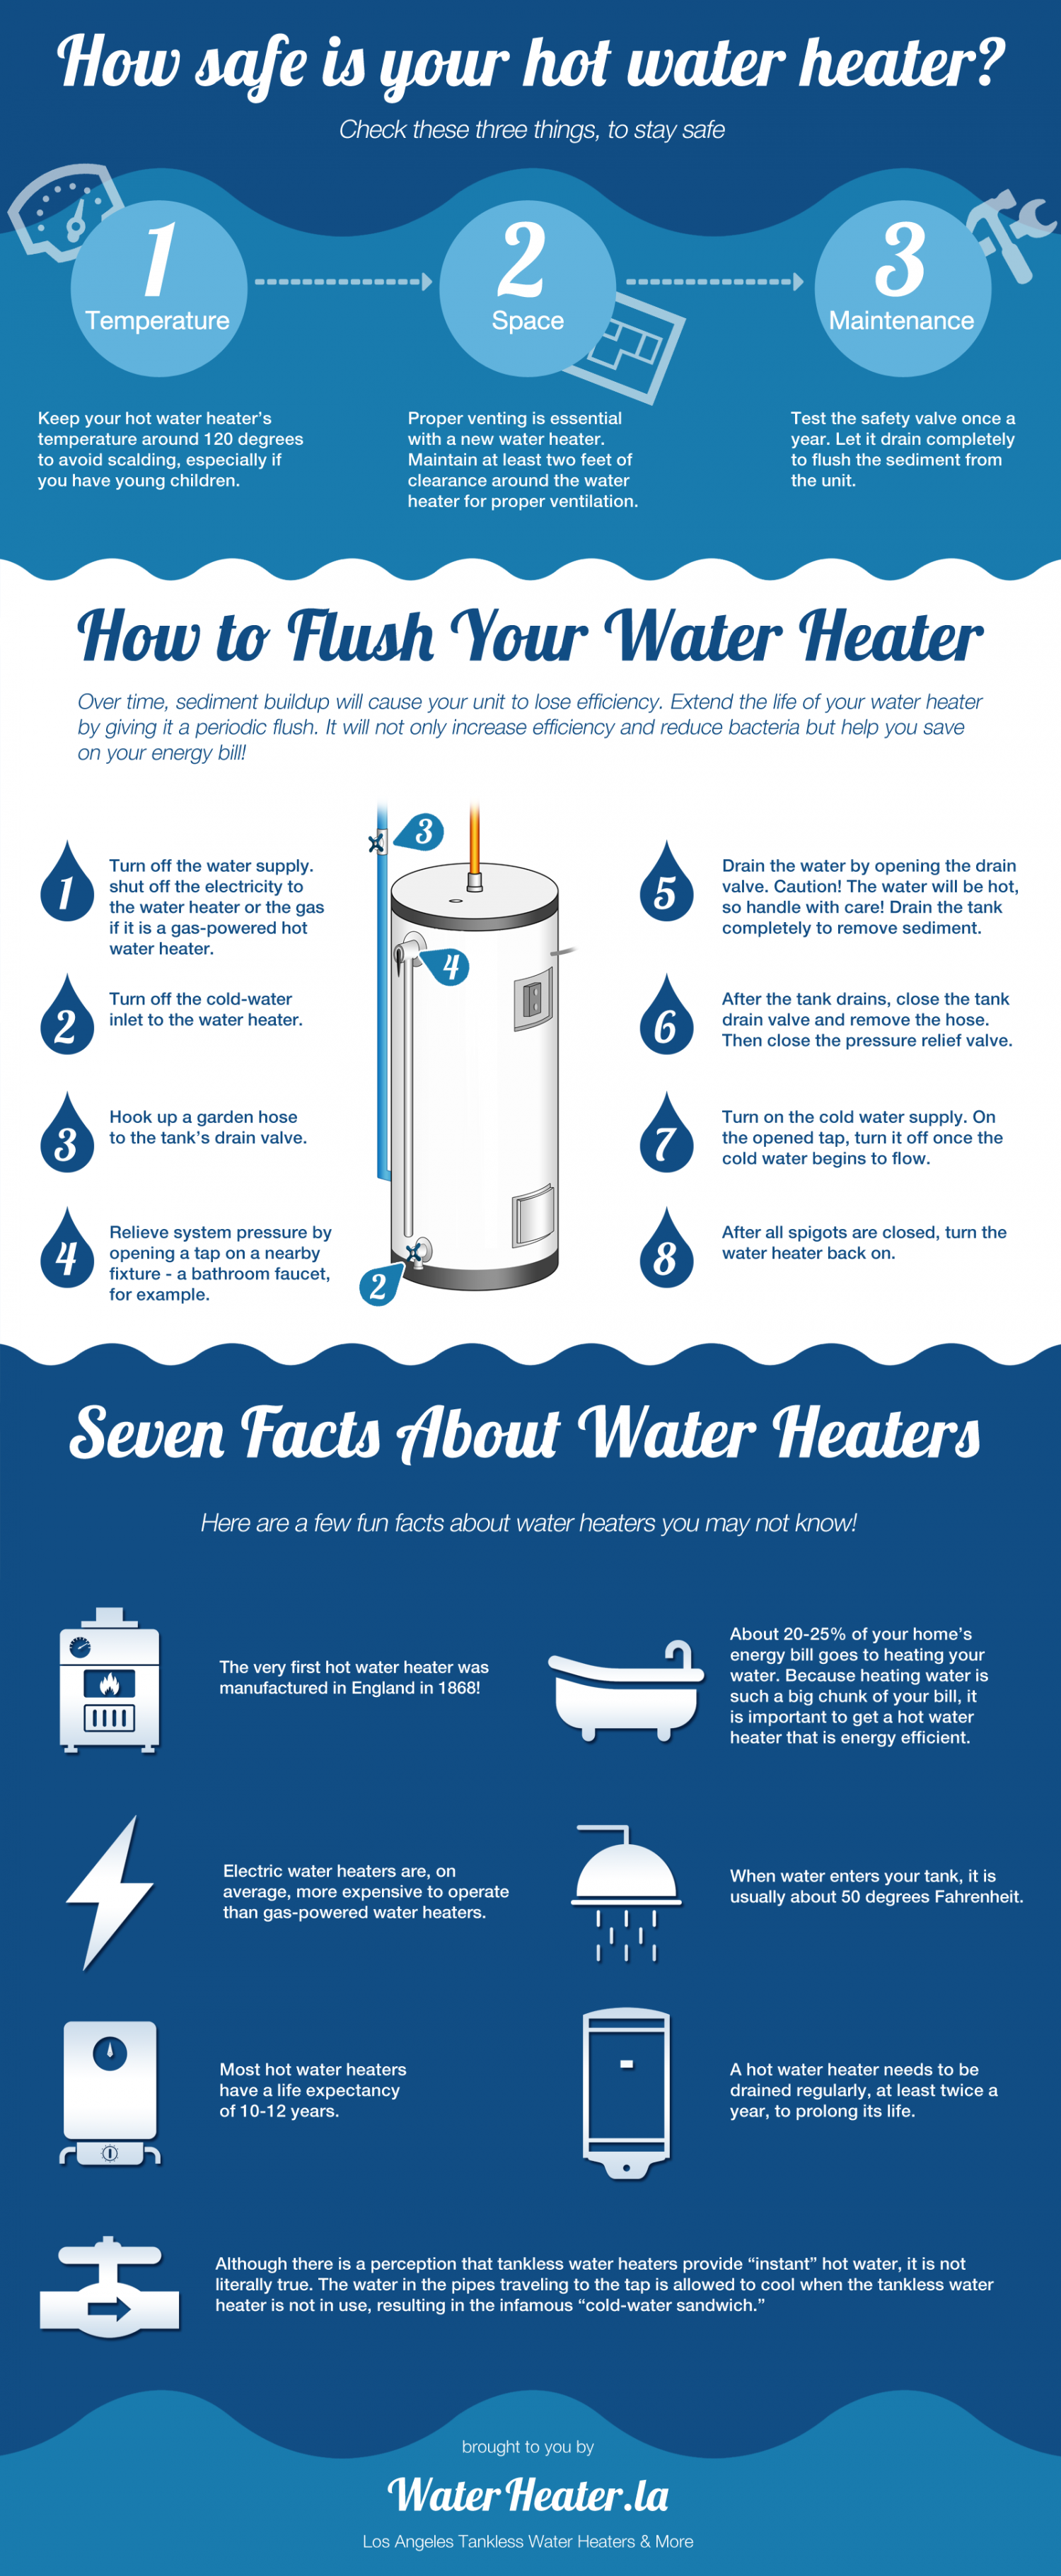 How safe is your water heater? Infographic